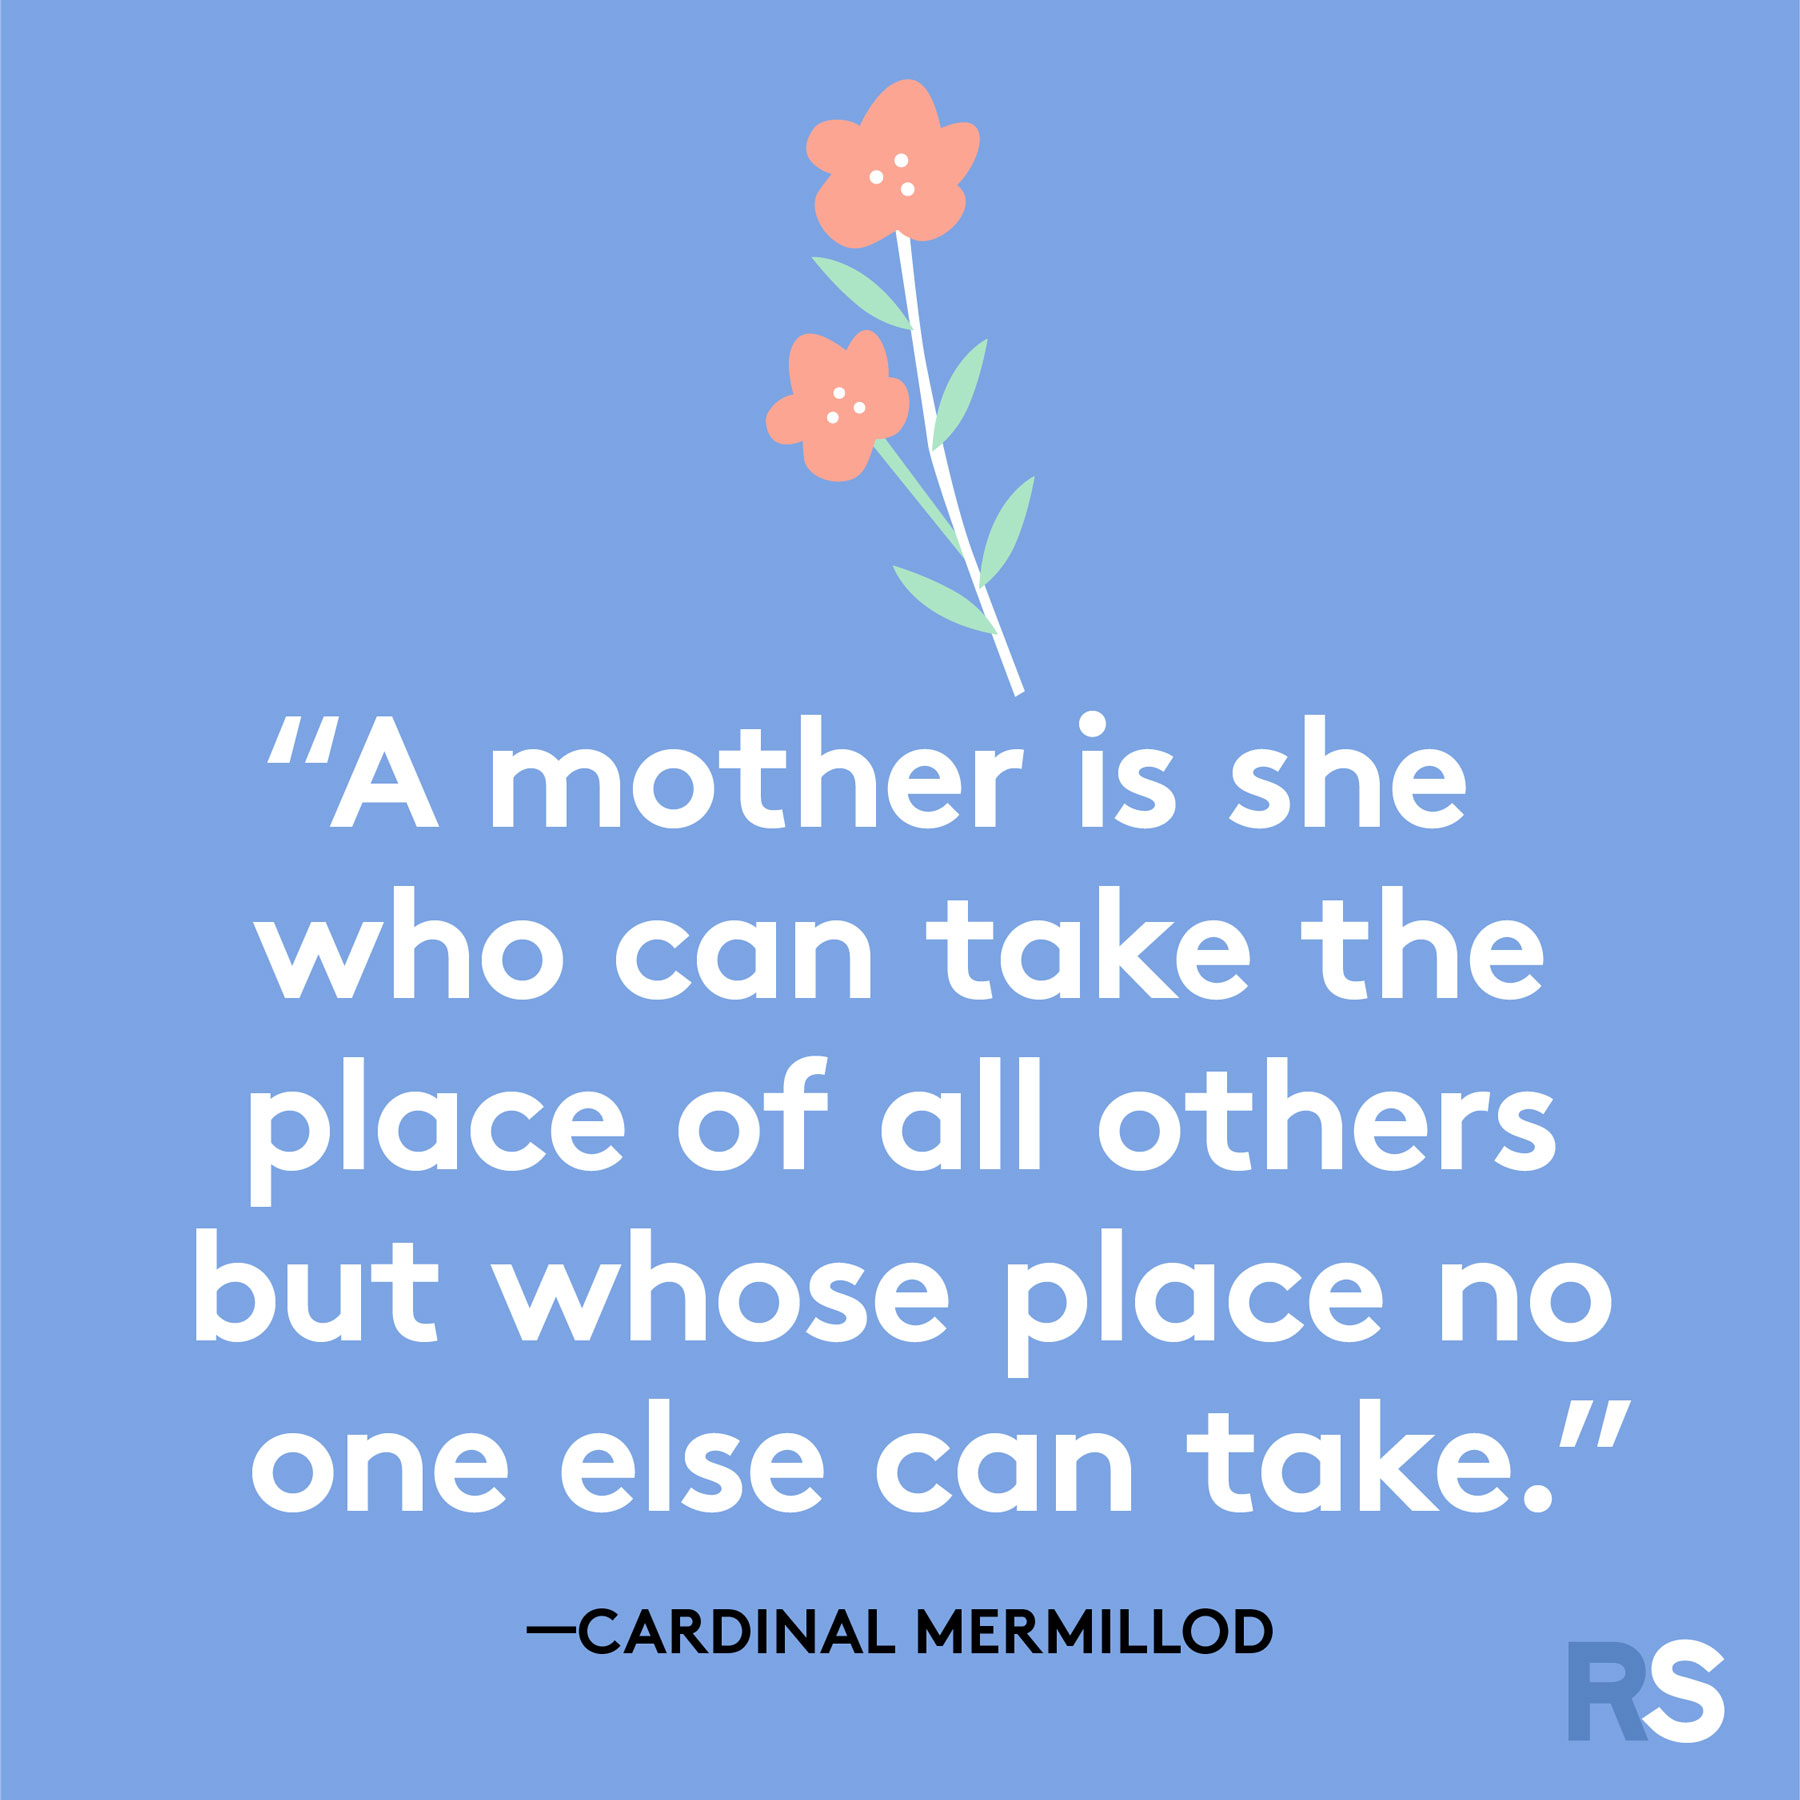 Mother's Day quotes and sayings - quote by Cardinal Mermillod